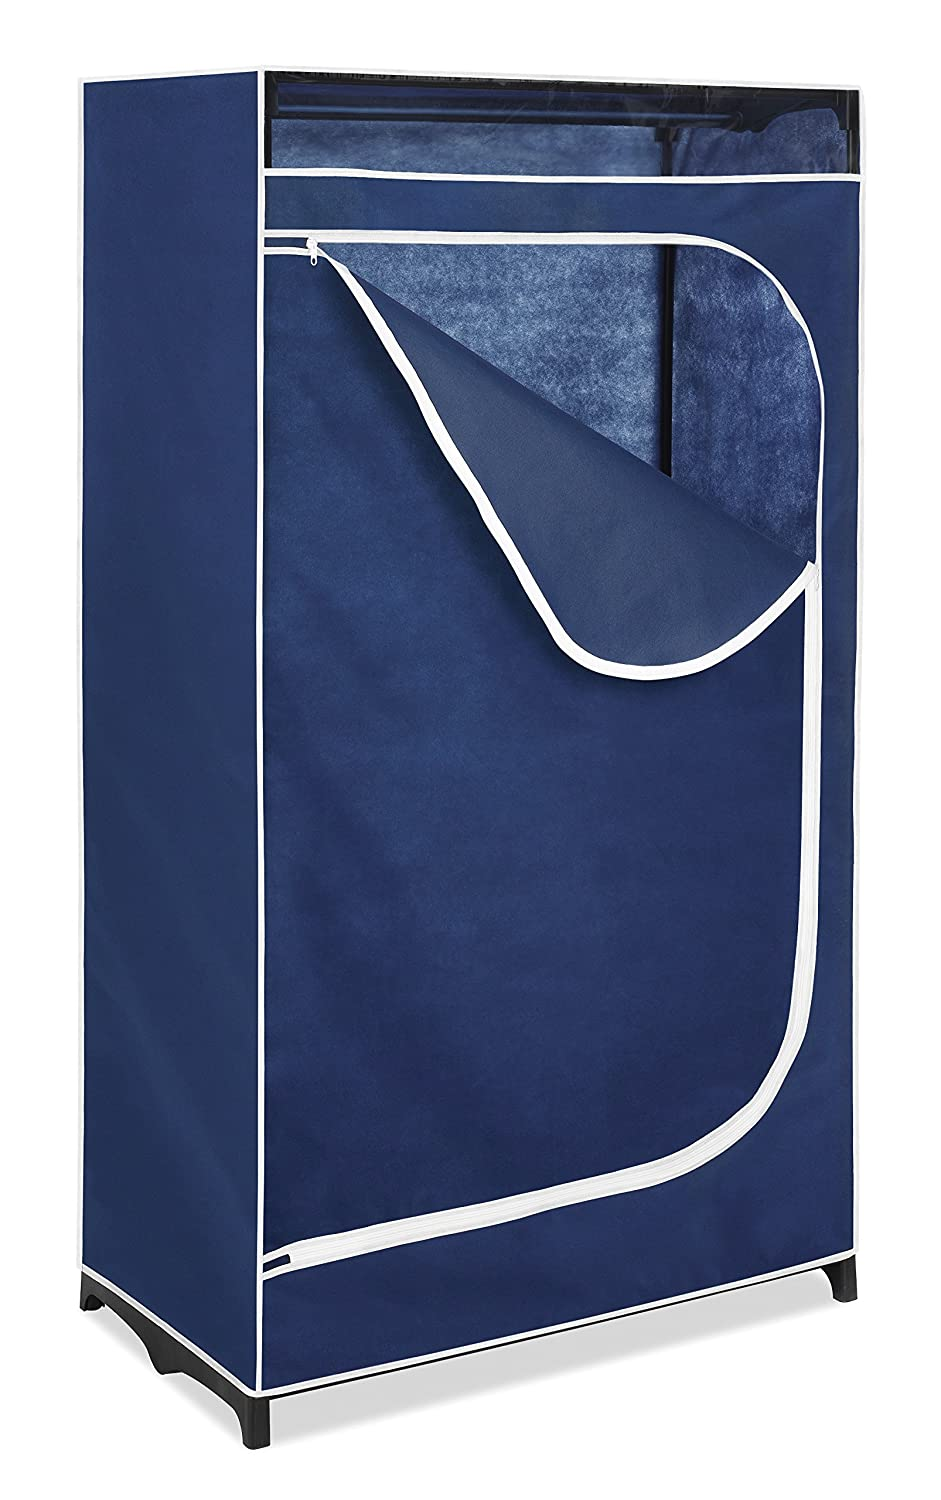 Whitmor Clothes Closet - Freestanding Garment Organizer with Sturdy Fabric Cover 6320-150-B